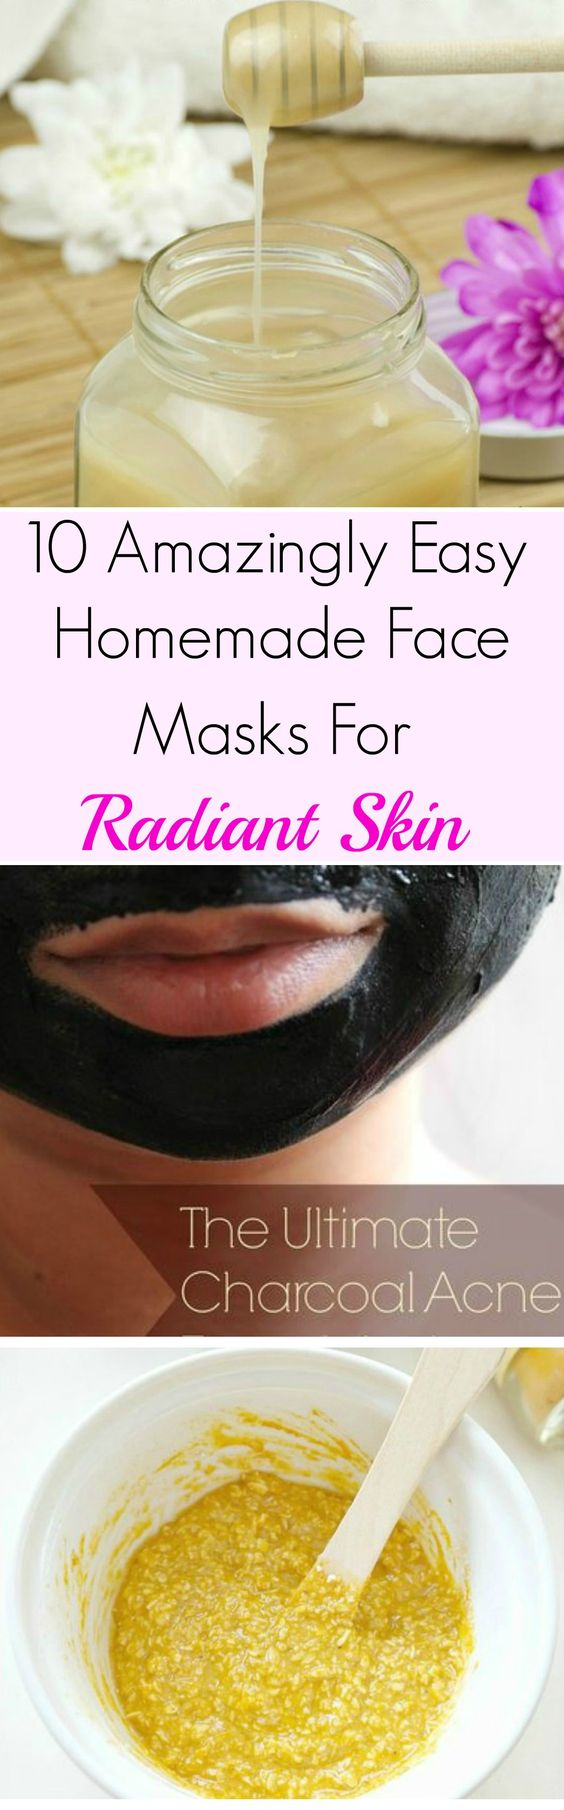 10 Amazingly Easy Homemade Face Masks For Radiant Skin. Wonderful list of DIY…